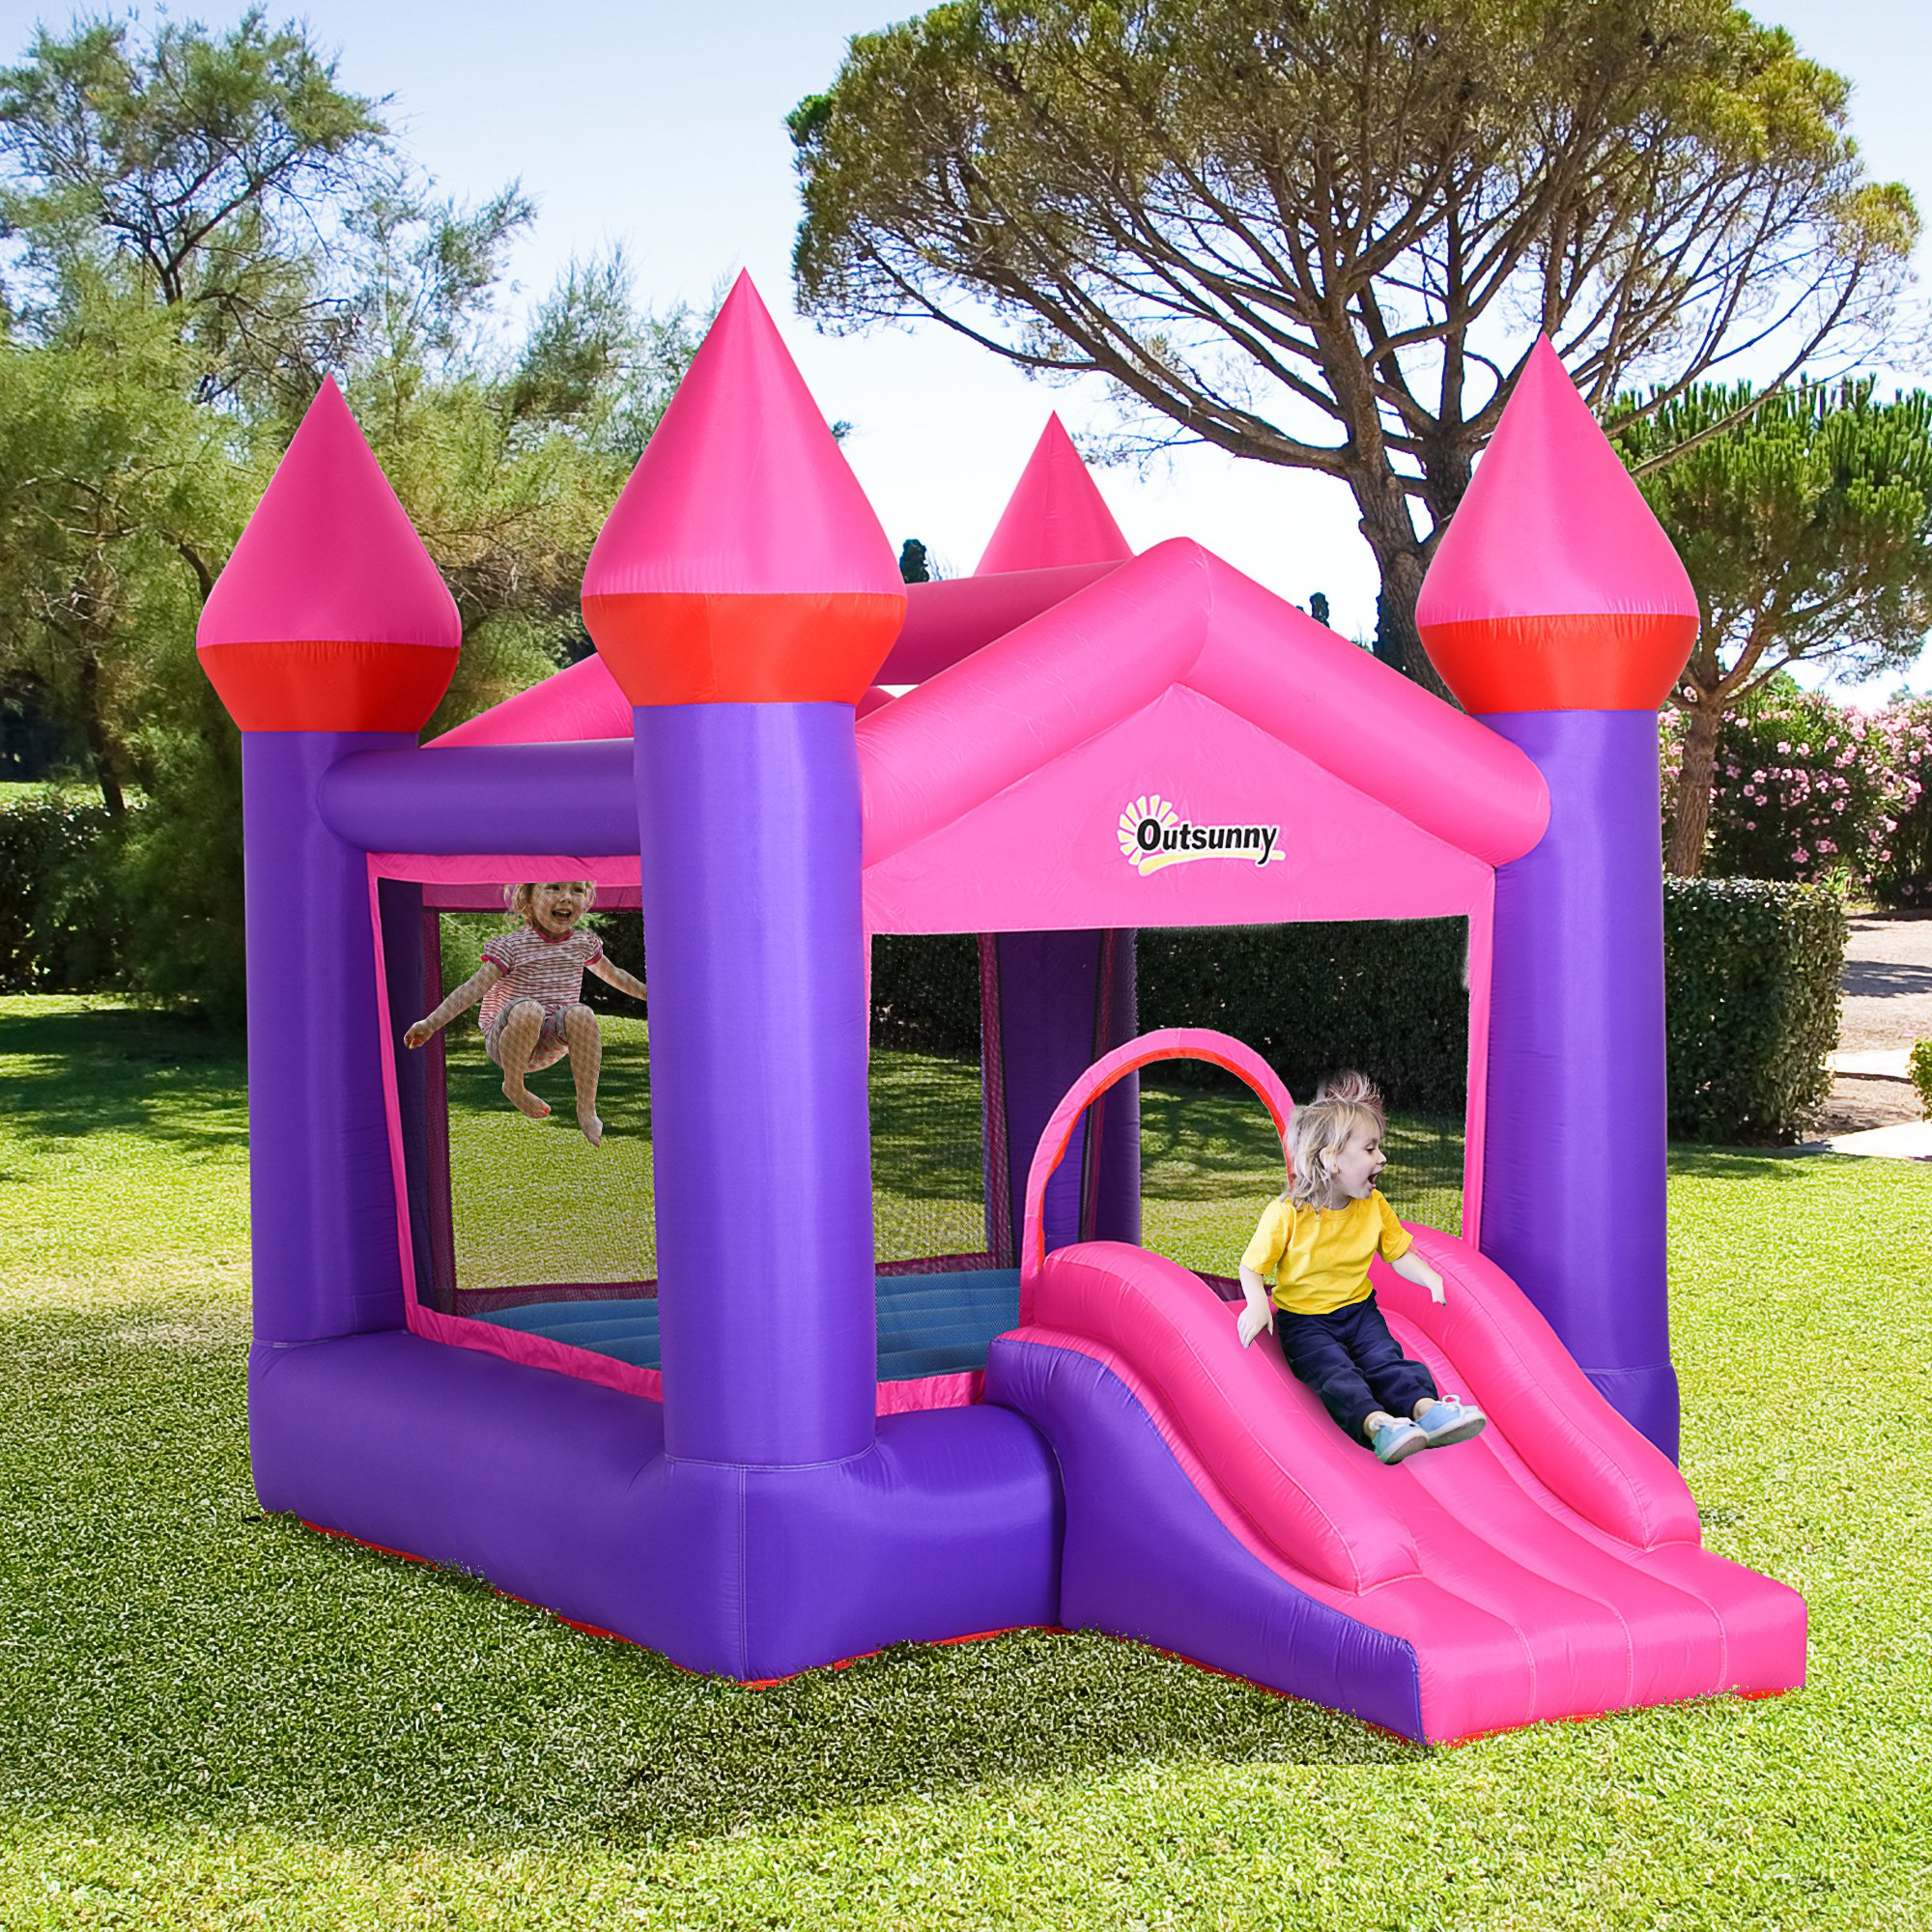 Outsunny Bounce Castle Inflatable Trampoline Slide for Kids w/ inflator 3.5 x 2.5 x 2.7m